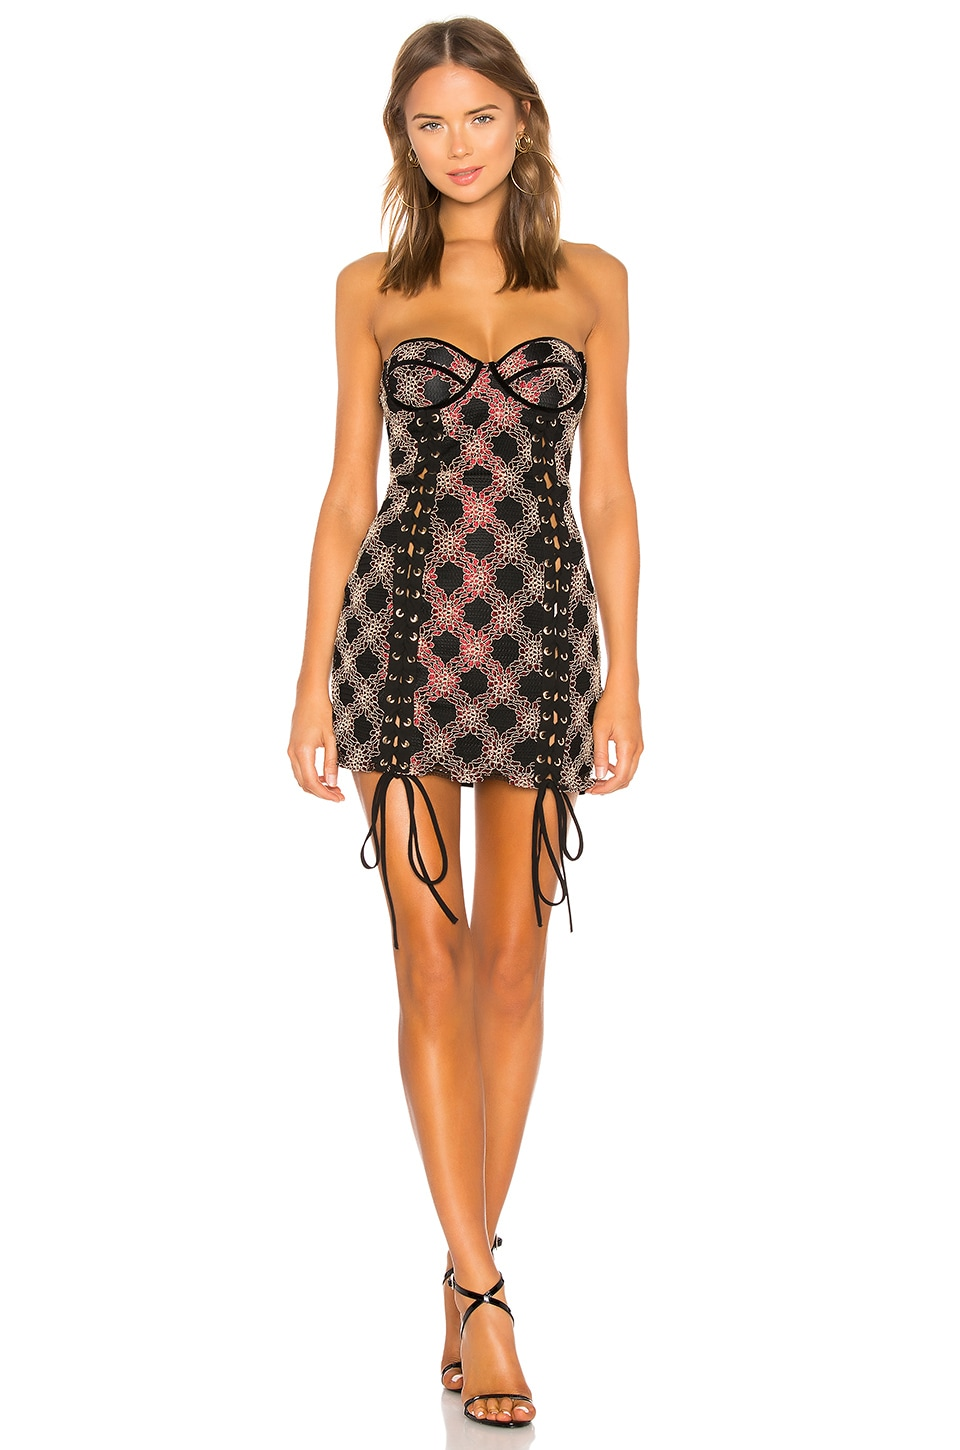 h:ours Bette Mini Dress in Black Sangria